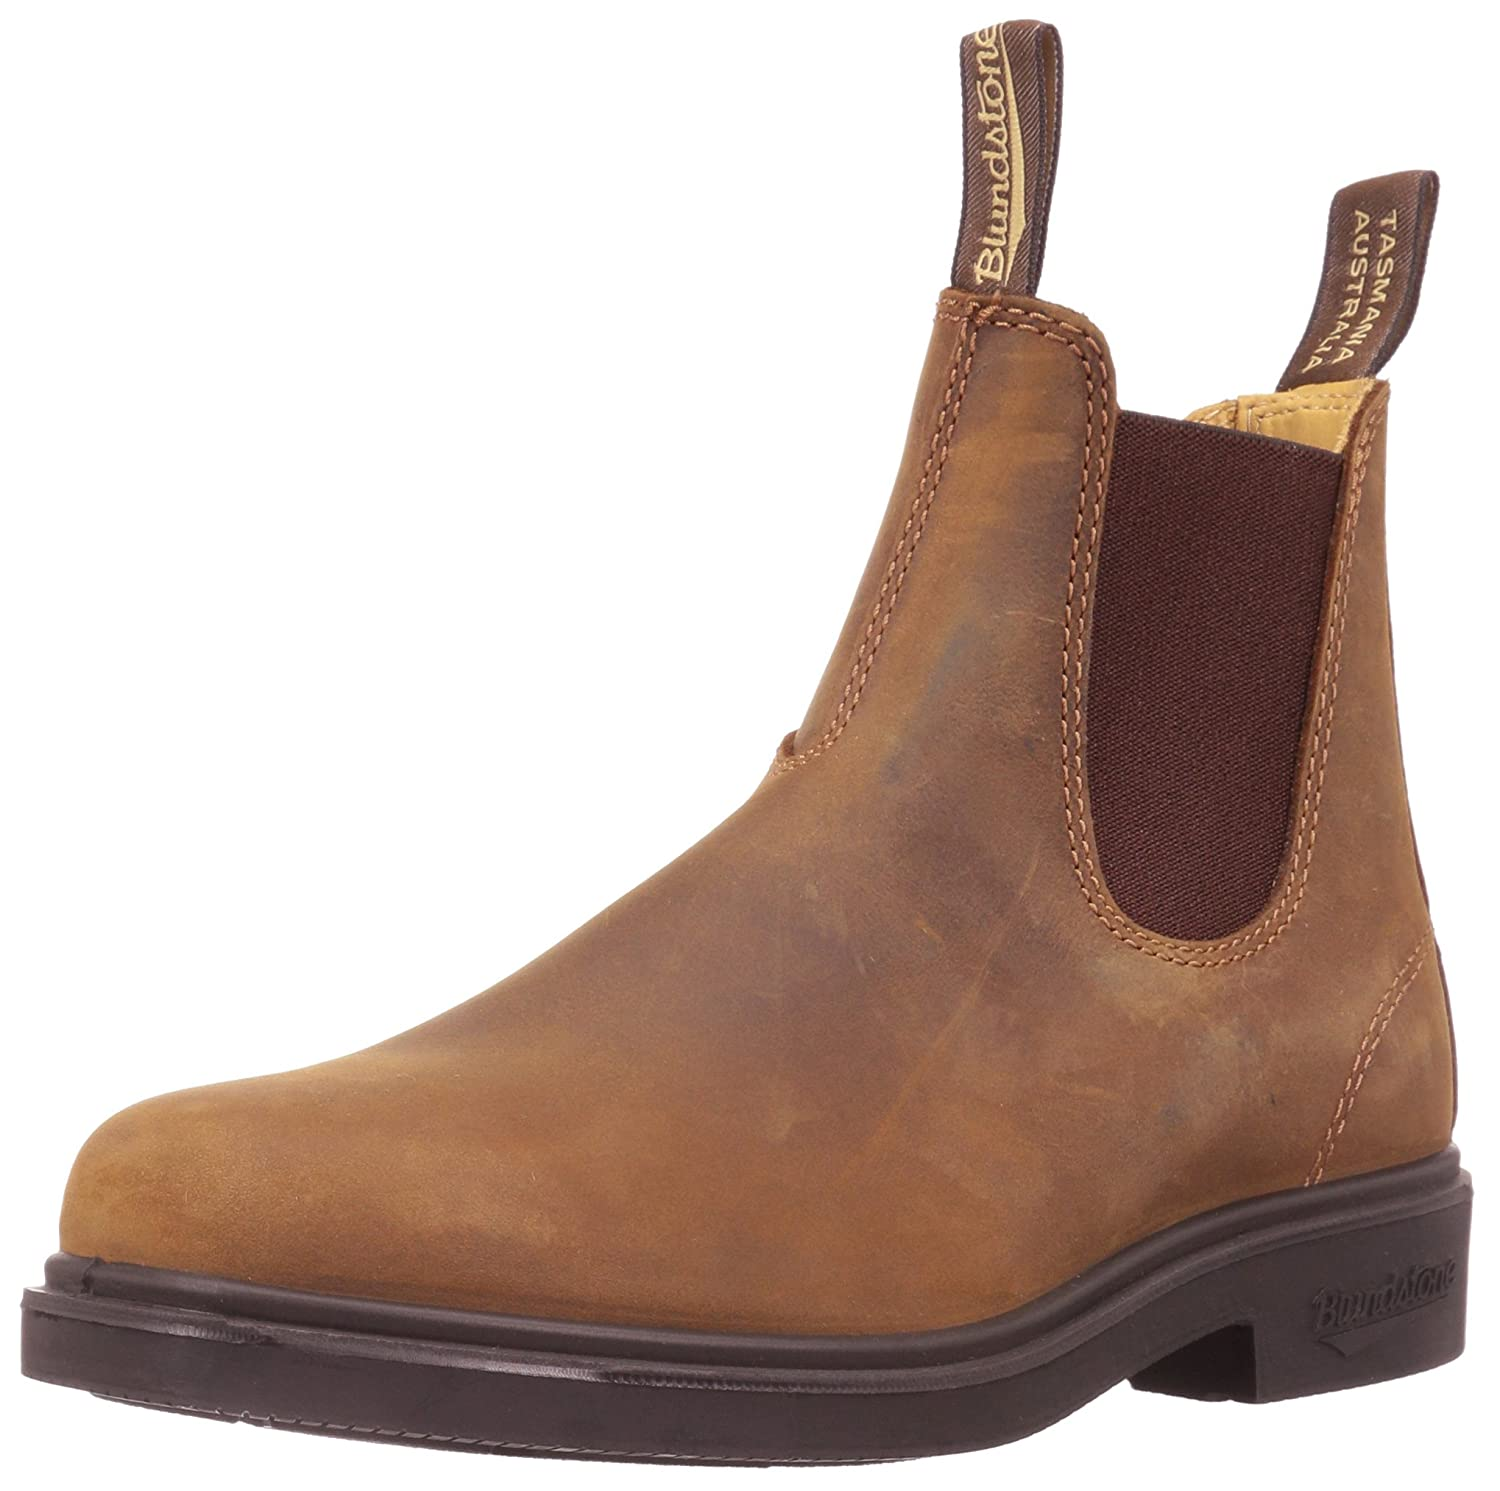 Blundstone Unisex Dress Series B0029F27AK 7 M US Men's /9 M US Women's -6 AU|Tan